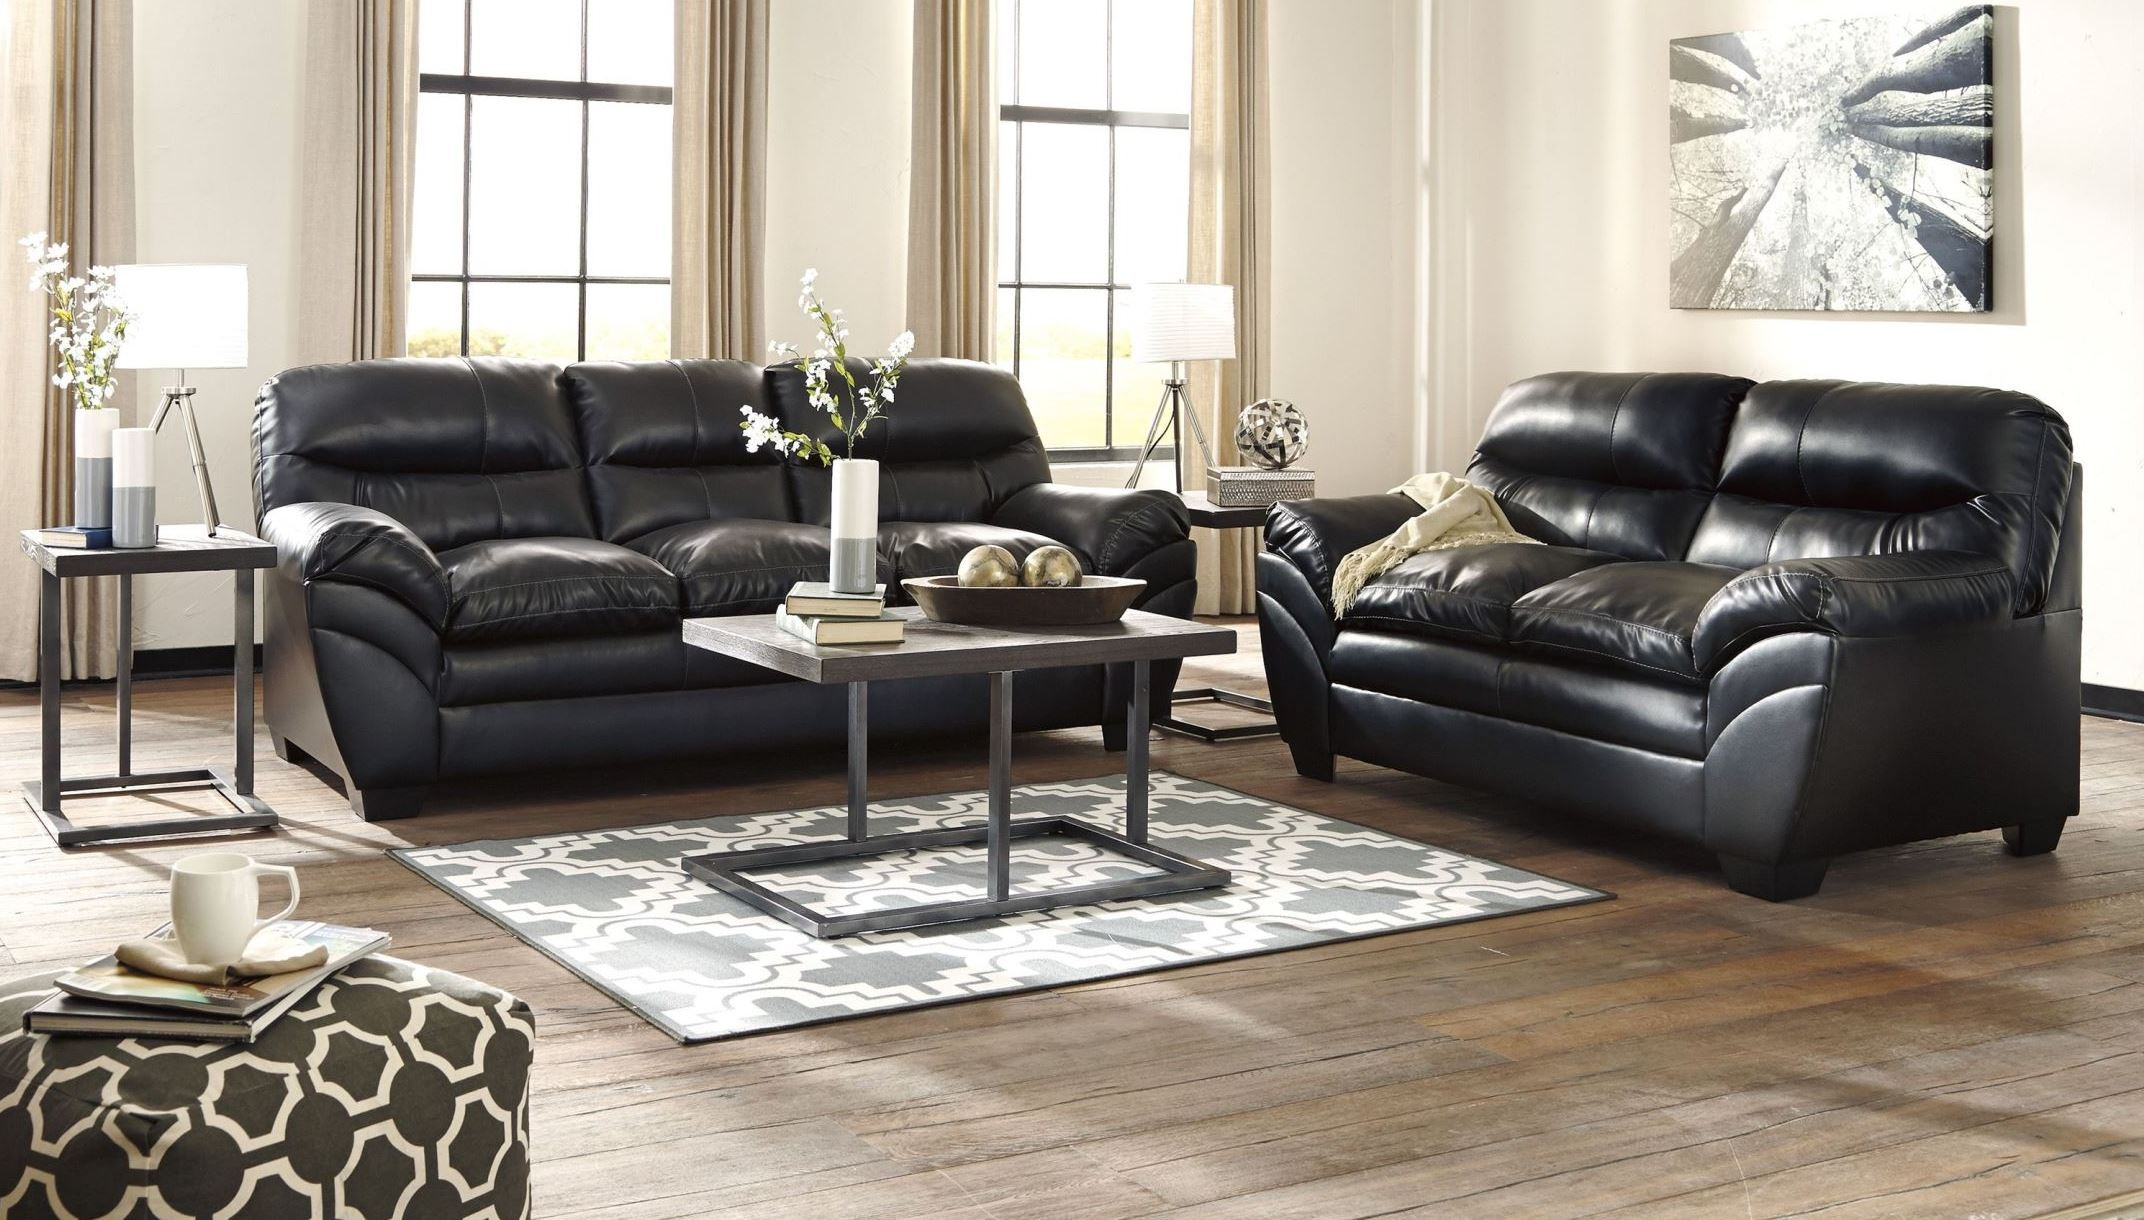 Tassler durablend black living room set from ashley for Black living room set